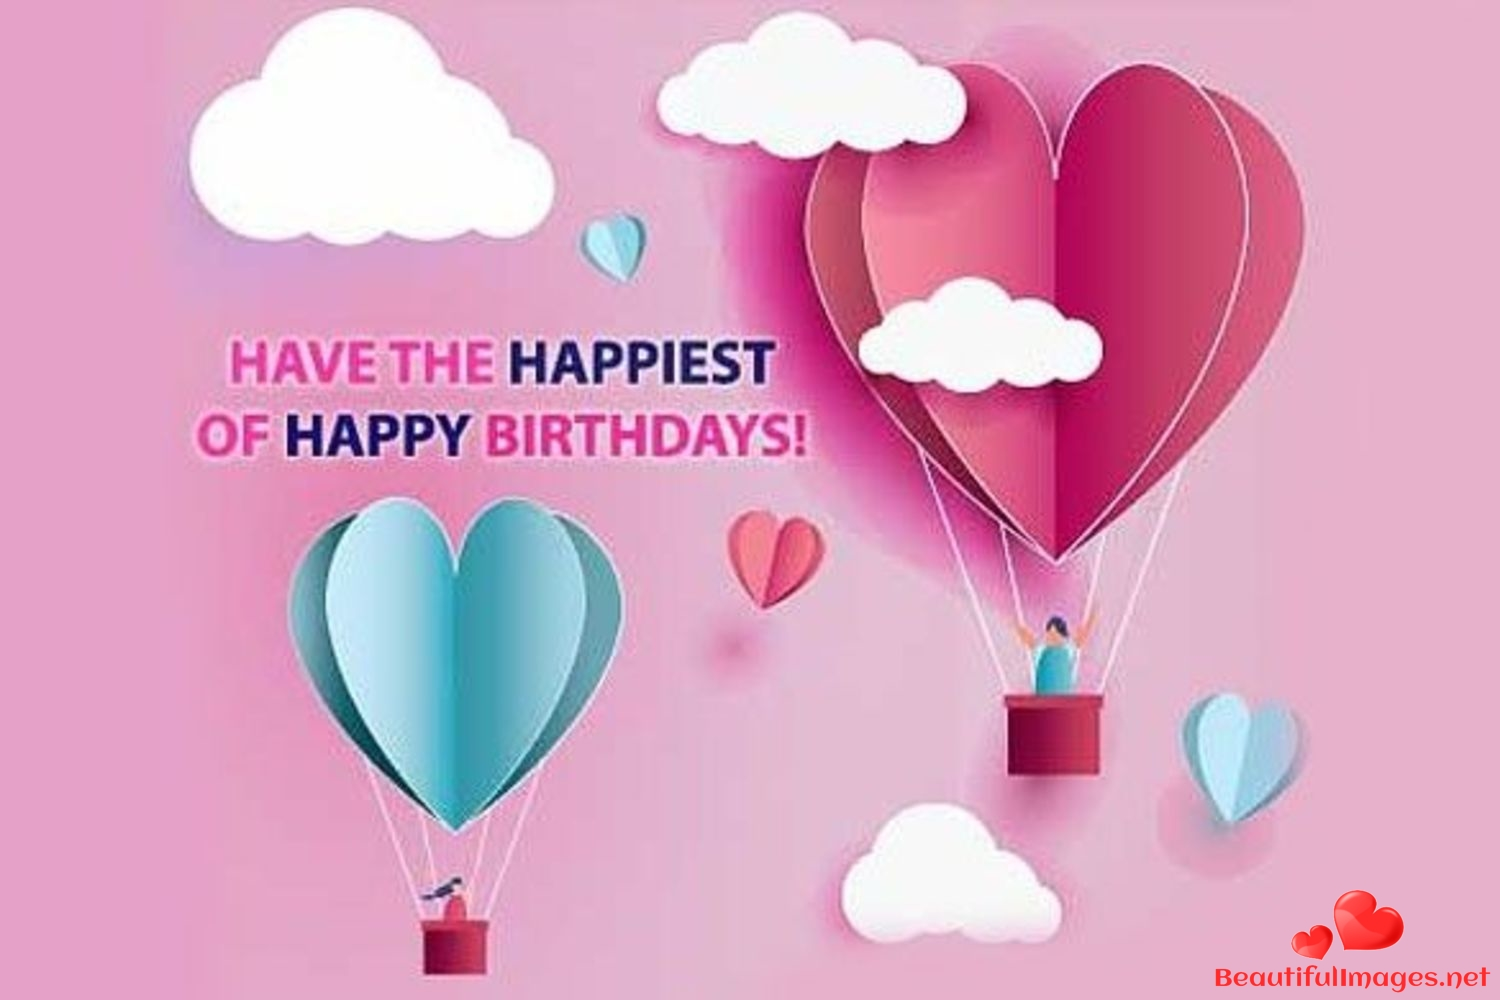 Happy-Birthday-Images-Pictures-Whatsapp-233